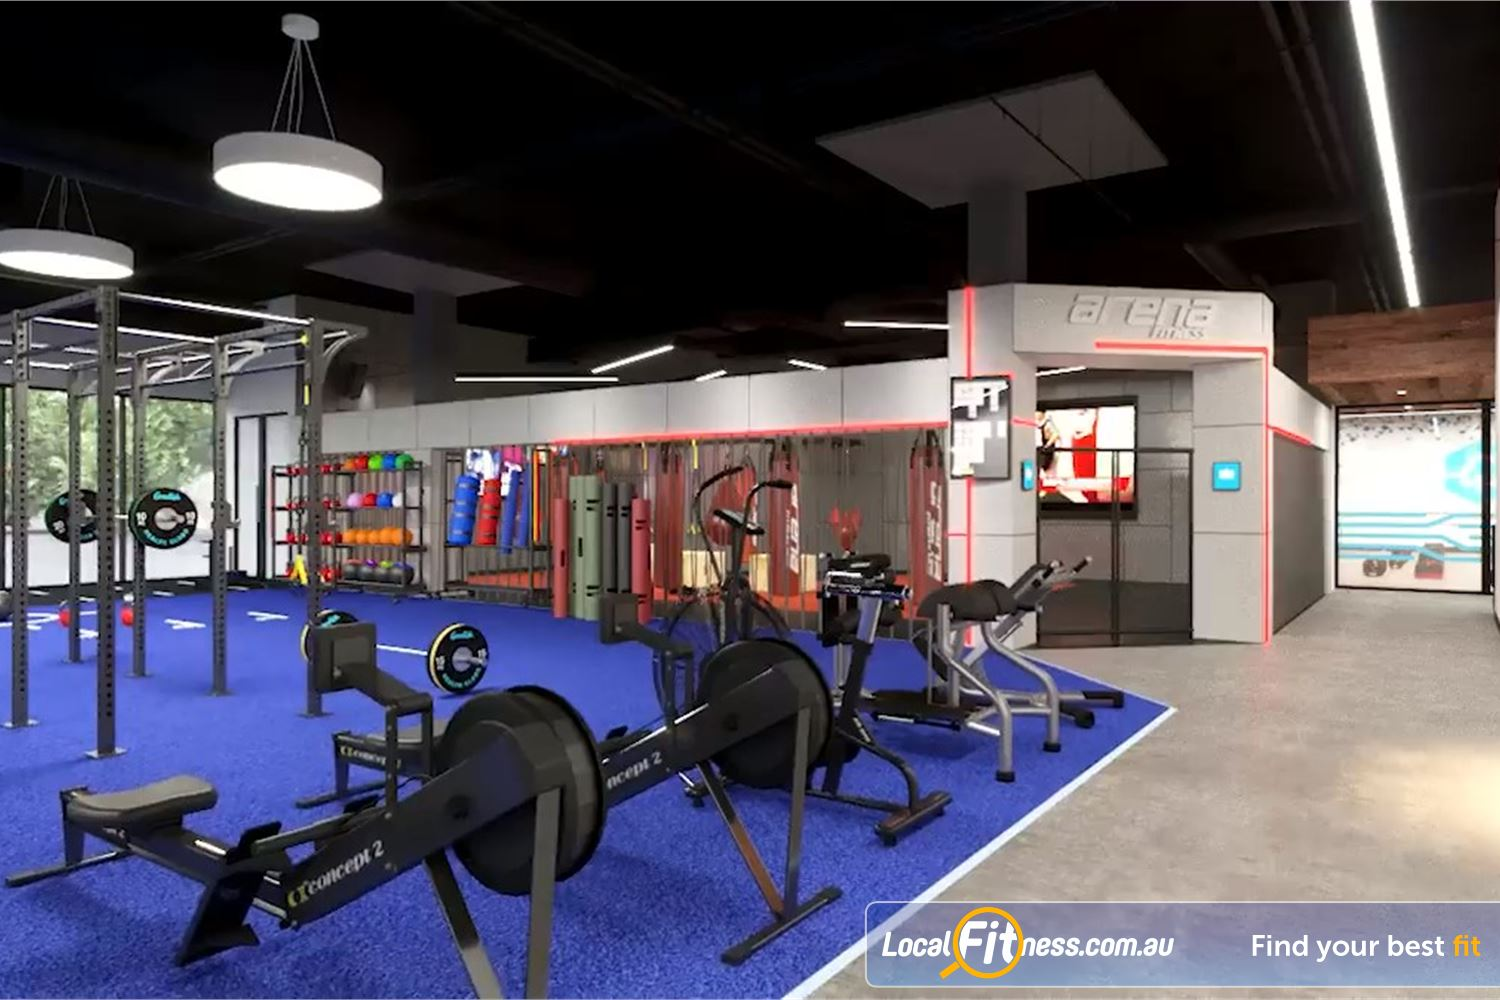 Goodlife Health Clubs Near Wilsonton Get a HIIT cardio workout with our rowers and air assault bikes.